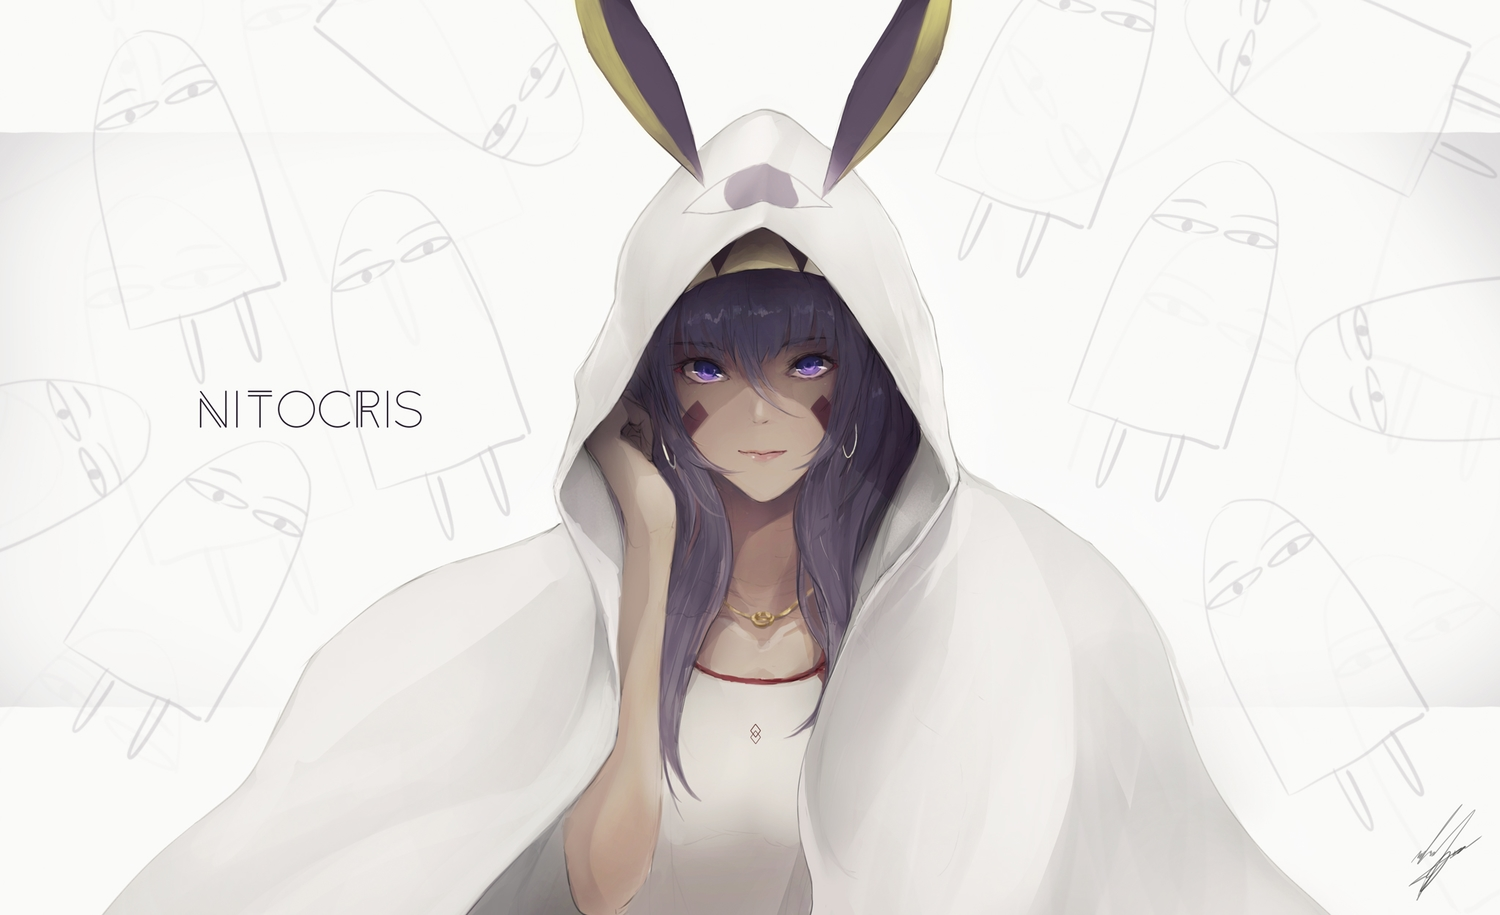 animal_ears fate/grand_order fate_(series) long_hair marumoru necklace nitocris_(fate/grand_order) purple_eyes purple_hair signed